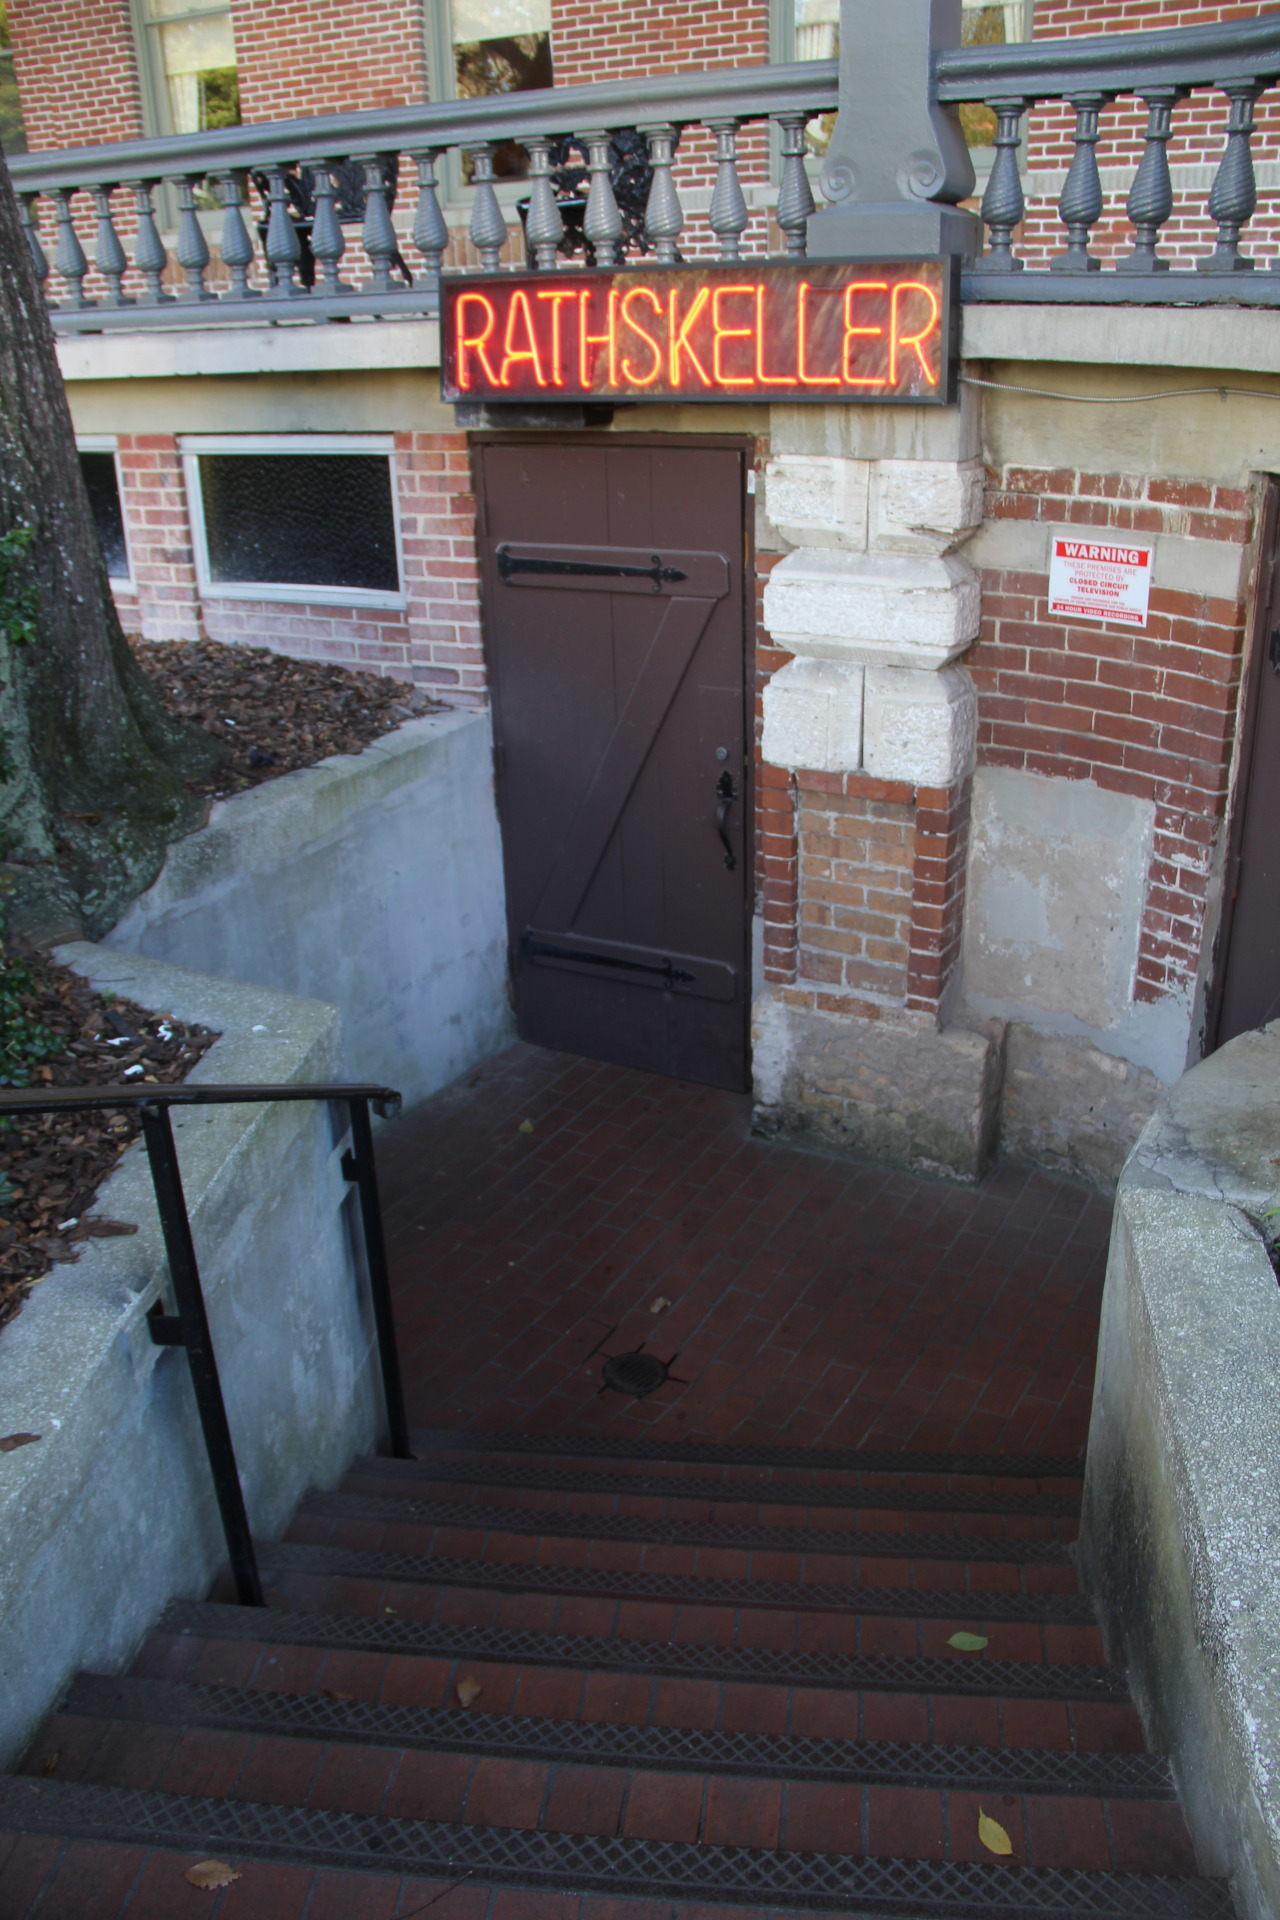 The Rathskeller located under Plant Hall always has delicious sandwiches.